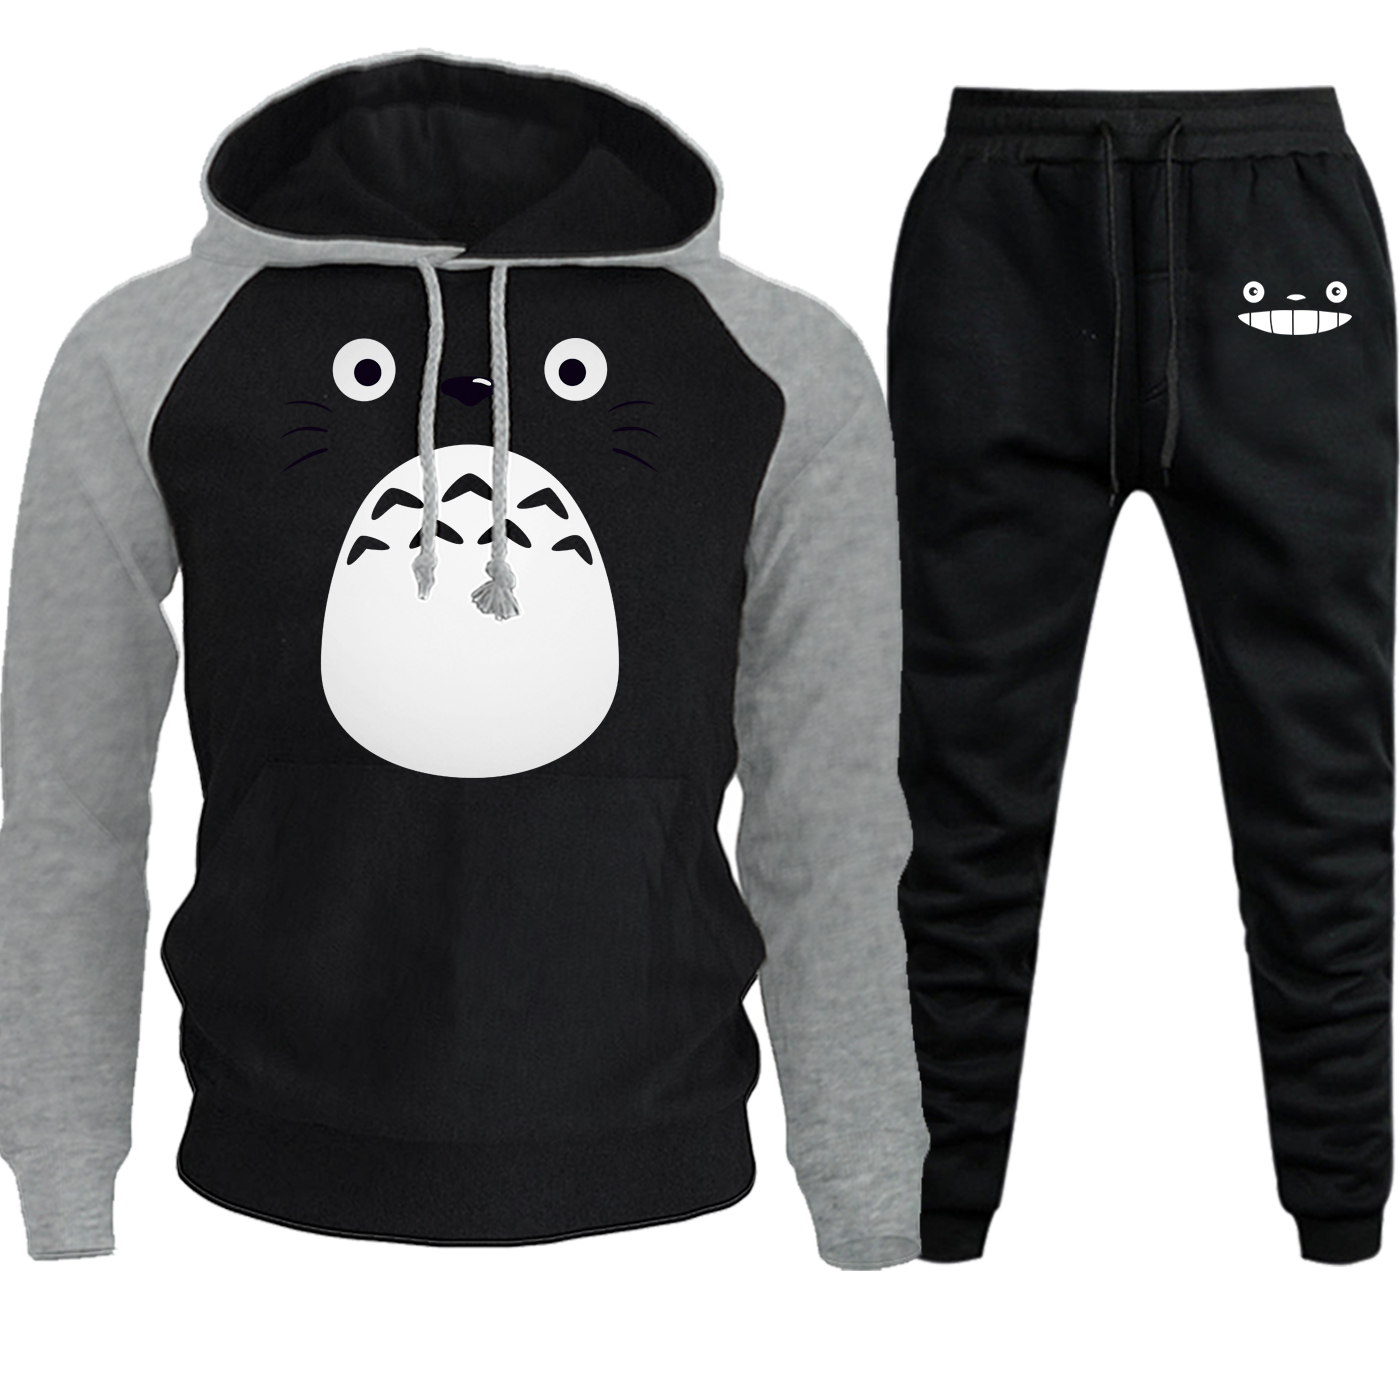 Cute Totoro Streetwear Mens Raglan Hoodies Autumn Winter 2019 New Cartoon Suit Casual Pullover Fleece Hooded+Pants 2 Piece Set